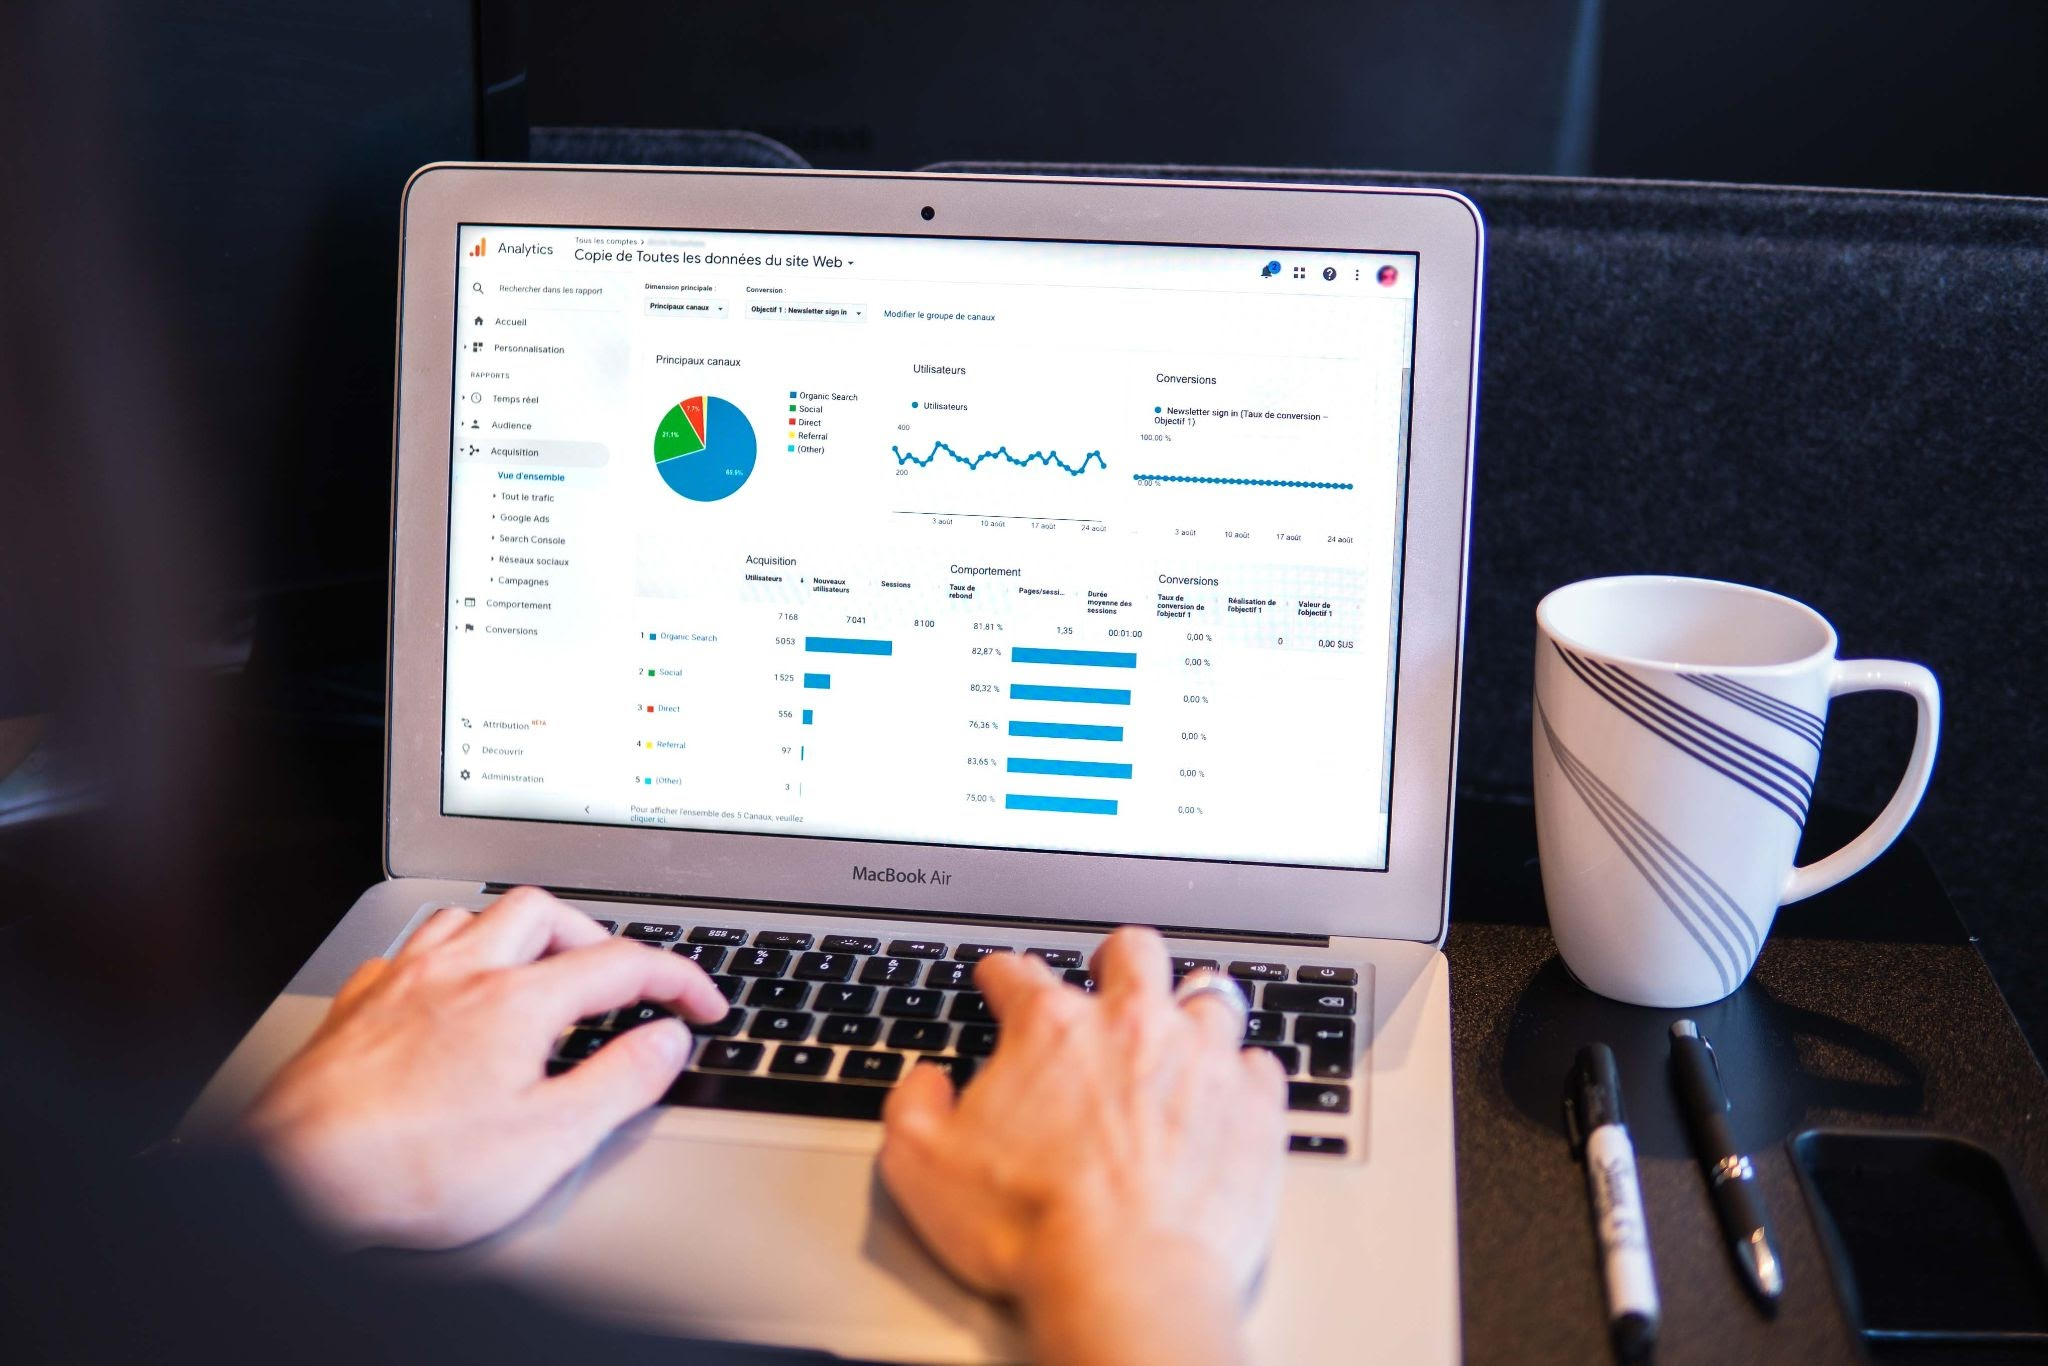 improve your digital marketing using Omnify's easy integration with leading Smart Marketing Analytics tools